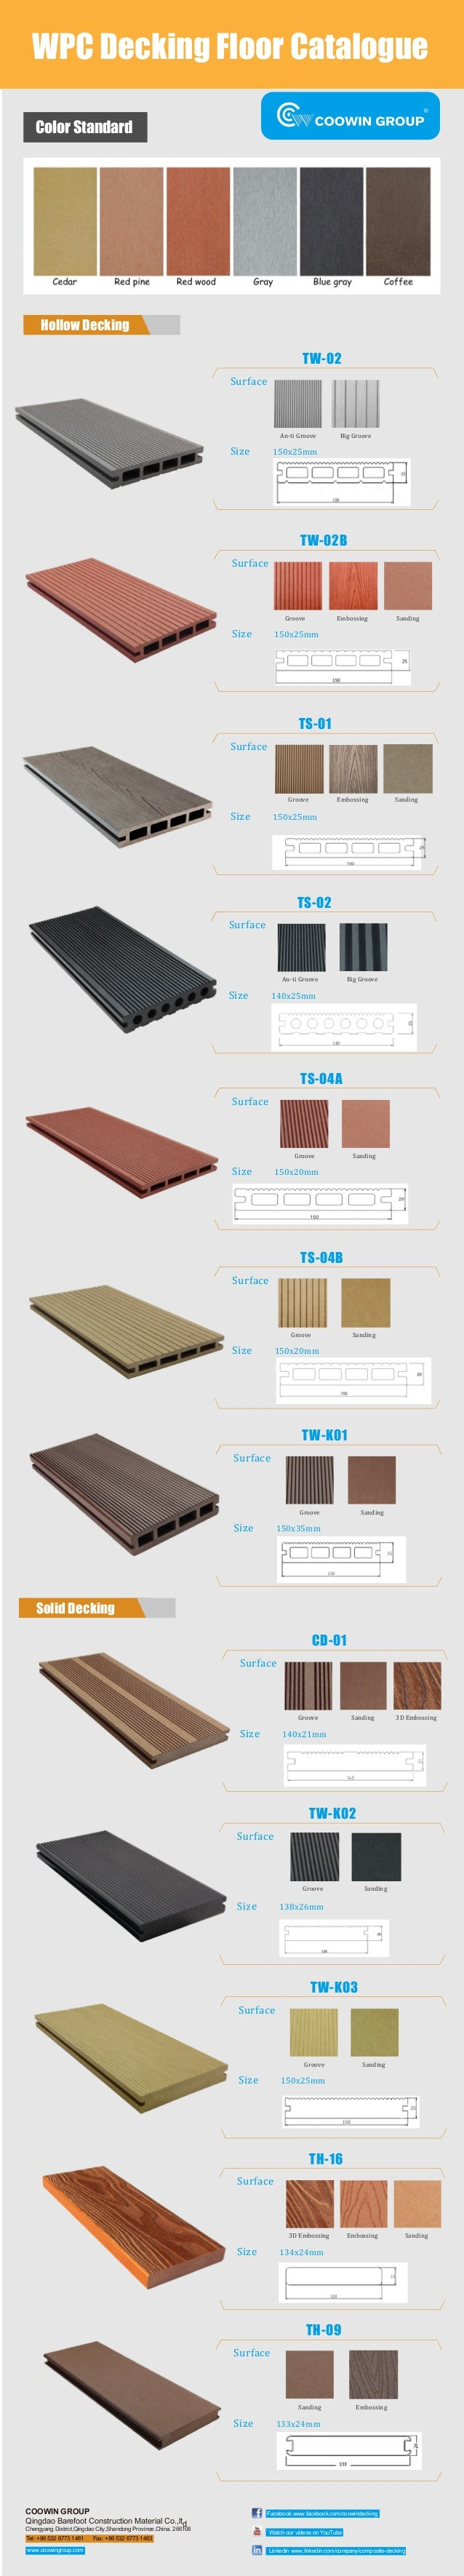 WPC Decking Floor Catalogue R Color Standard Hollow Decking Solid Decking TW-02 Surface Size 150x25mm An-ti Groove Big Gro...